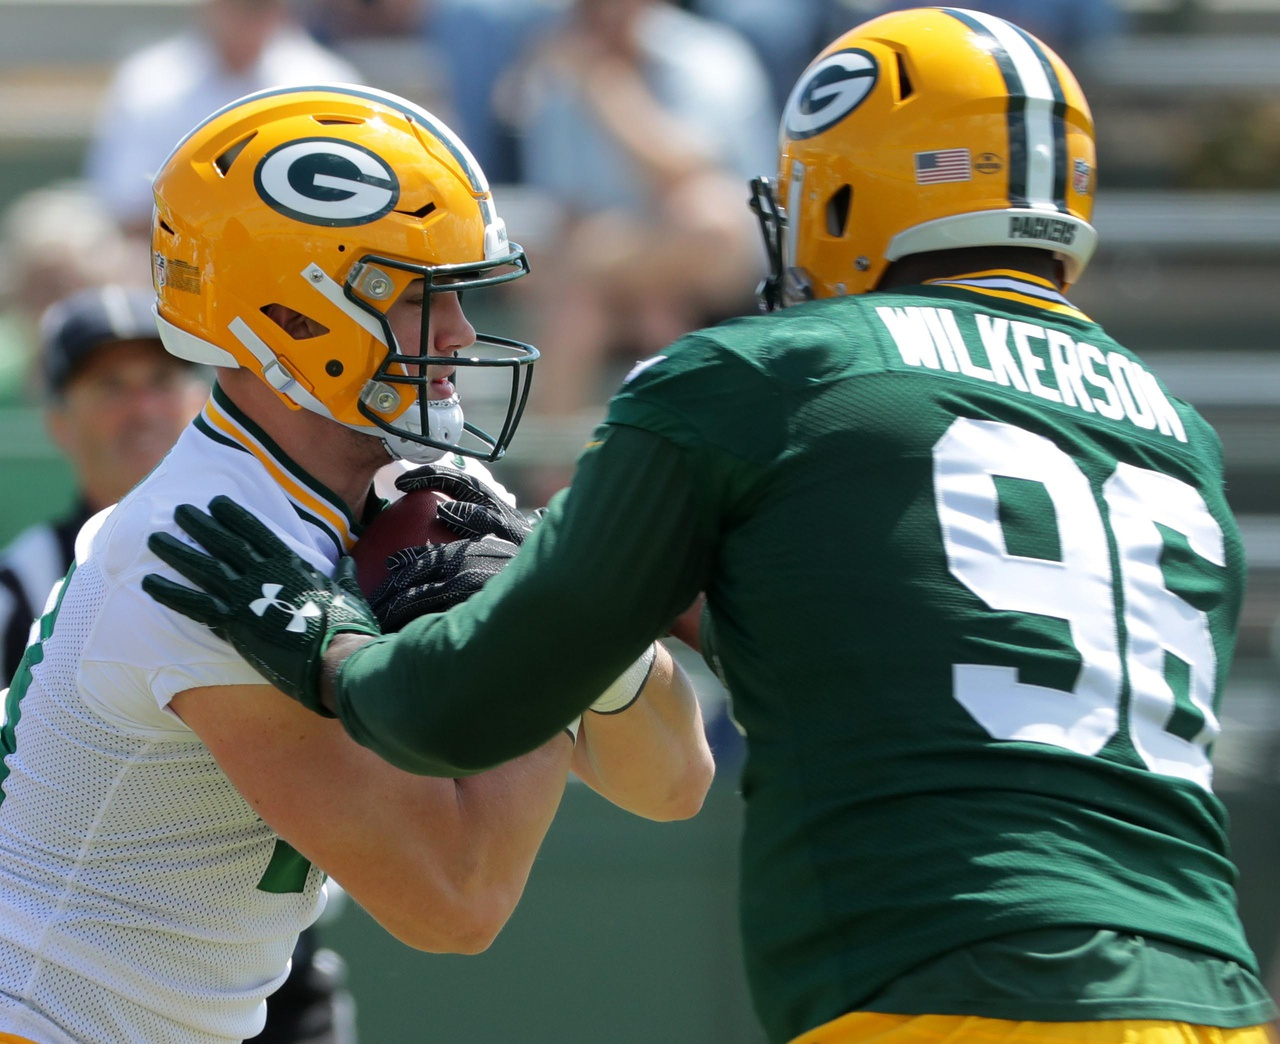 PACKERS FOOTBALL FRIDAY: Make No Mistake